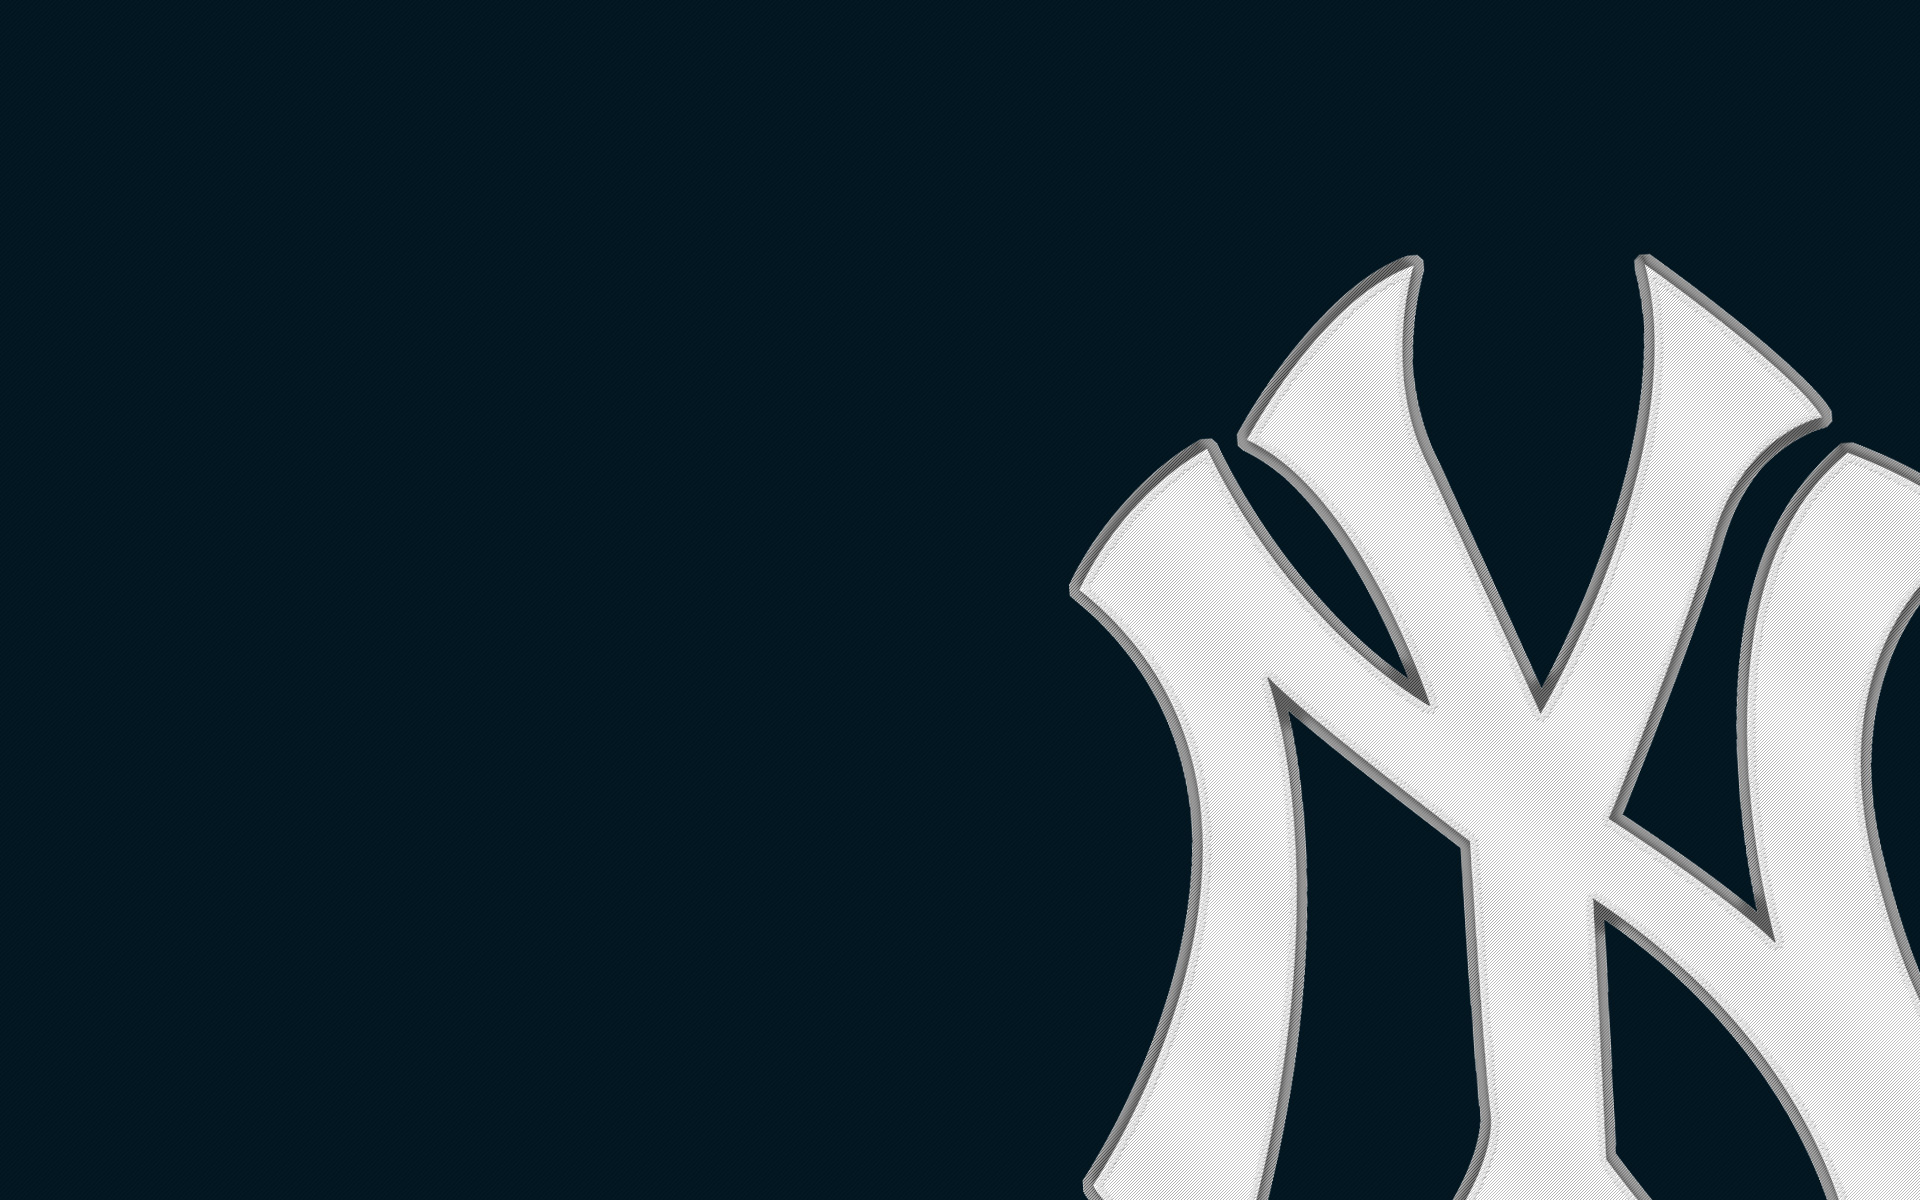 New York Yankees Stitch by NYY7Mantle 1920 x 1200 1920x1200